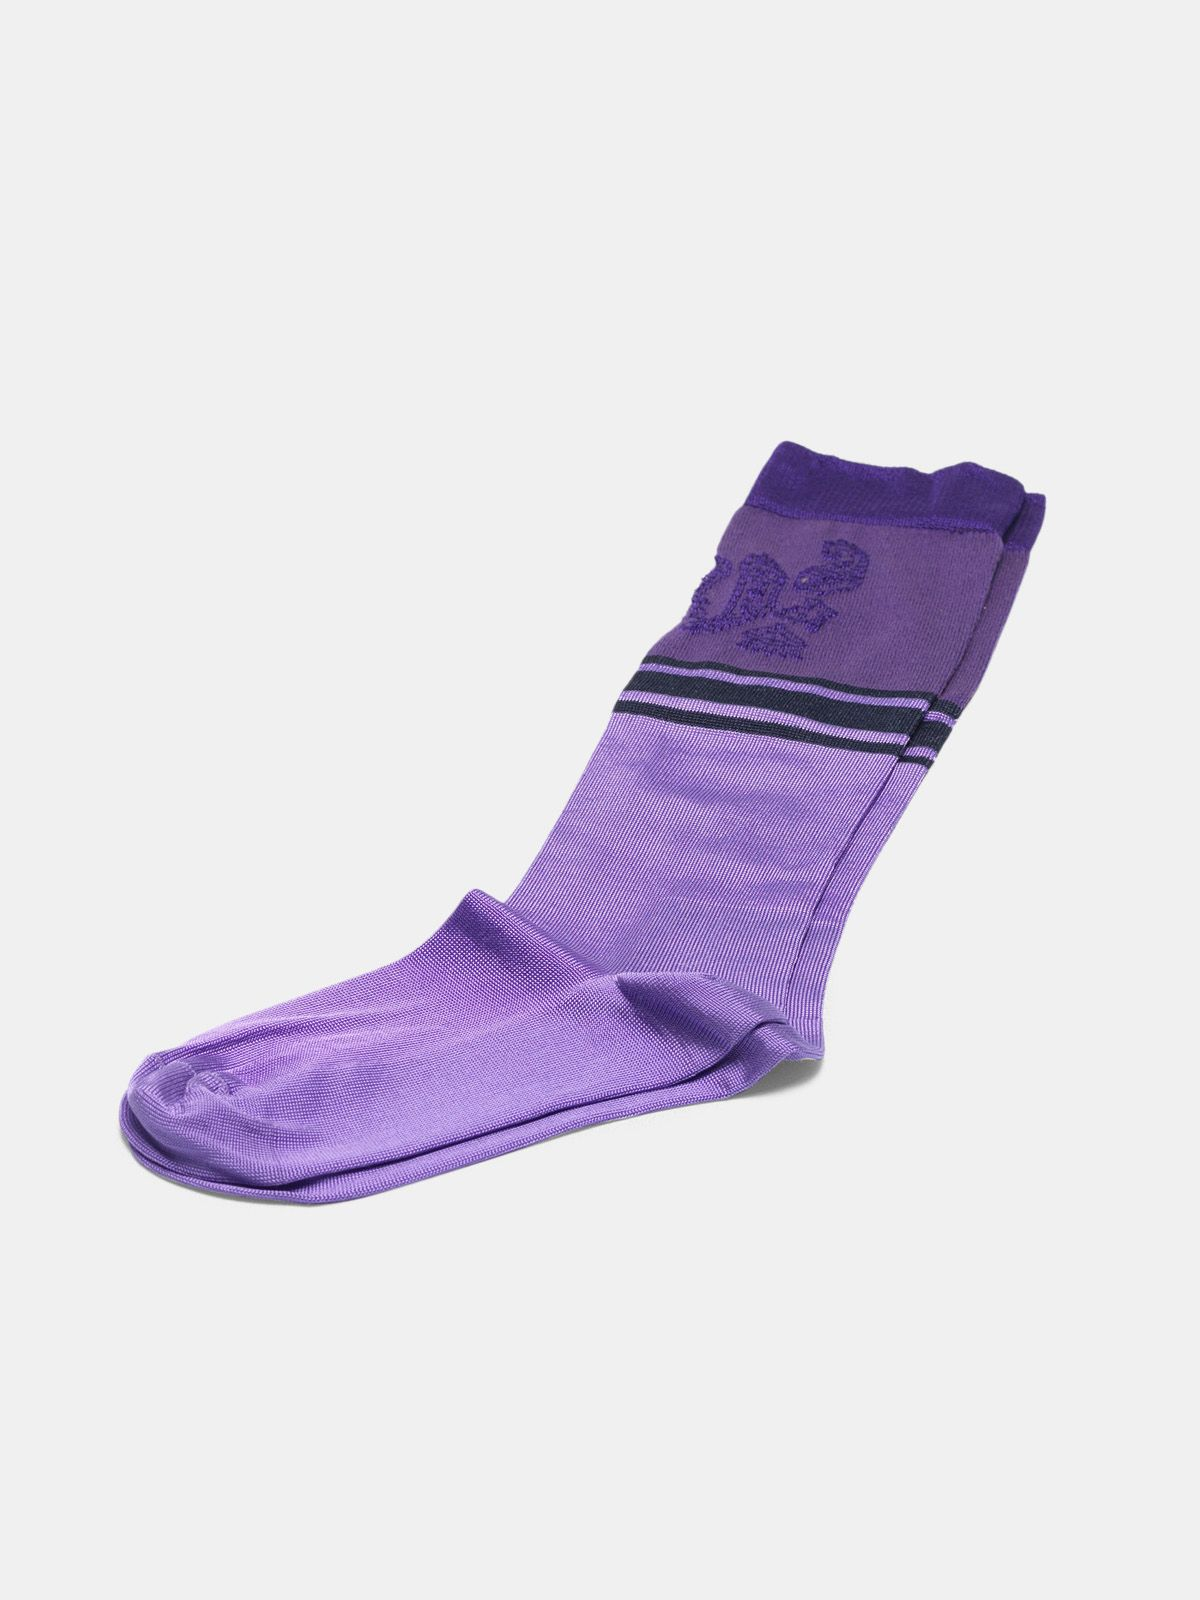 Golden Goose - Purple Addison socks with jacquard pattern in